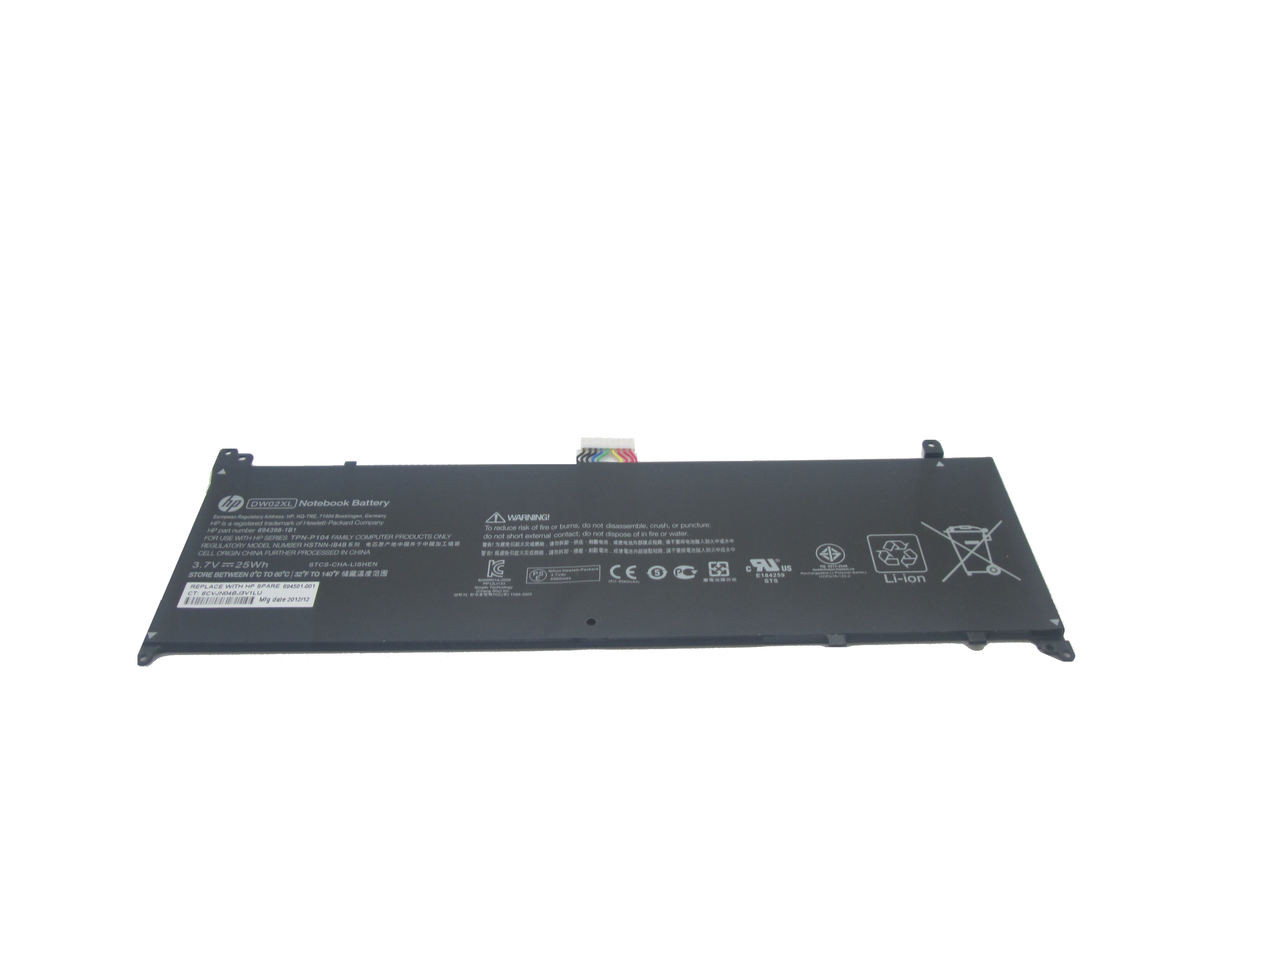 Driver for HP ENVY x2 11-g050br